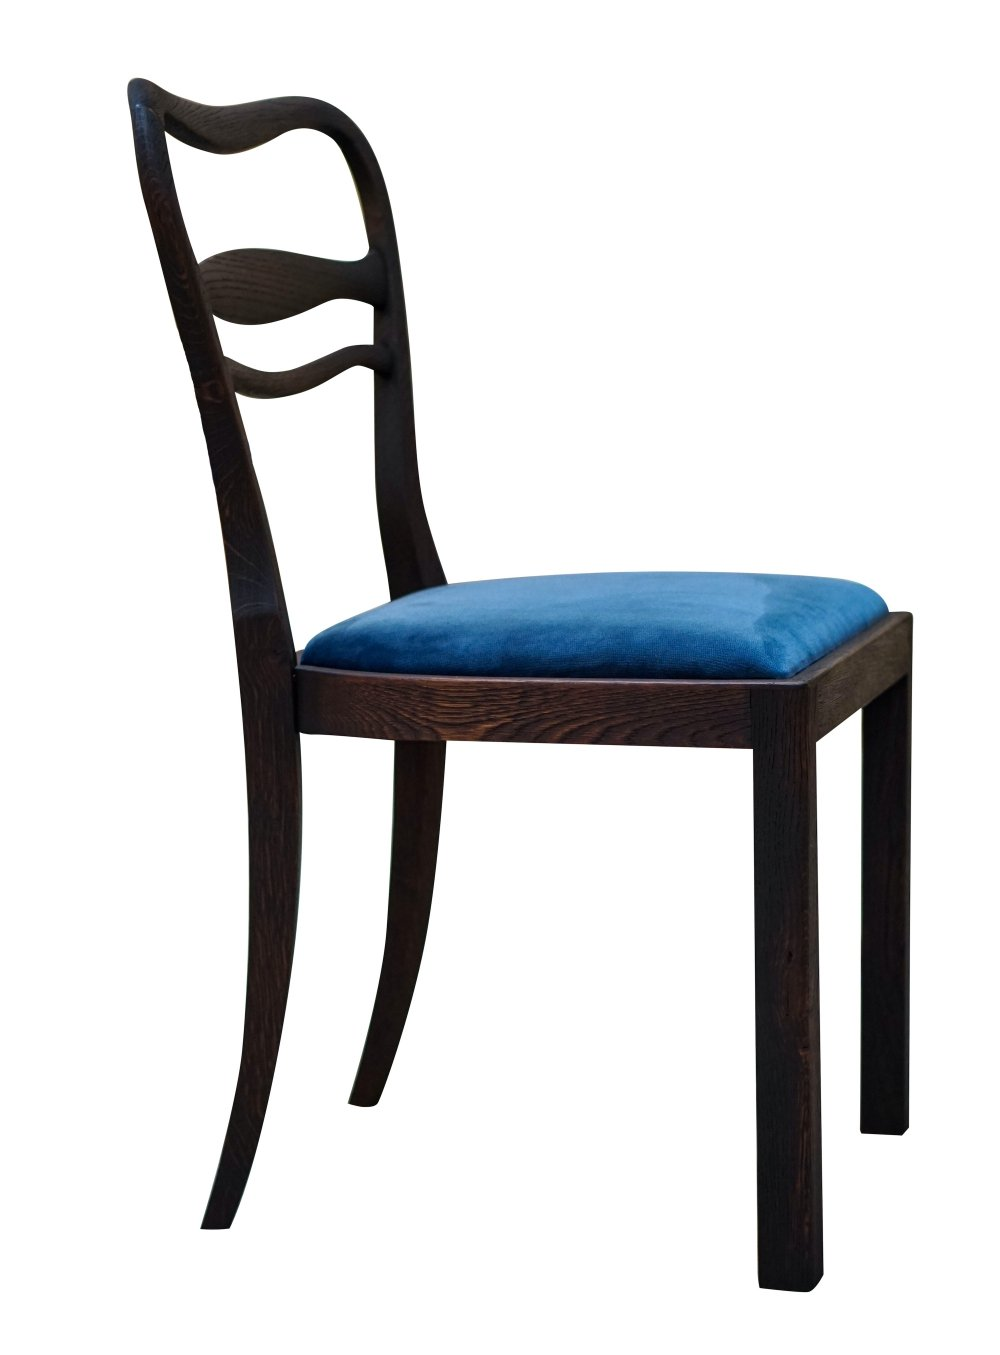 4 x Art deco dining chair, 1930s